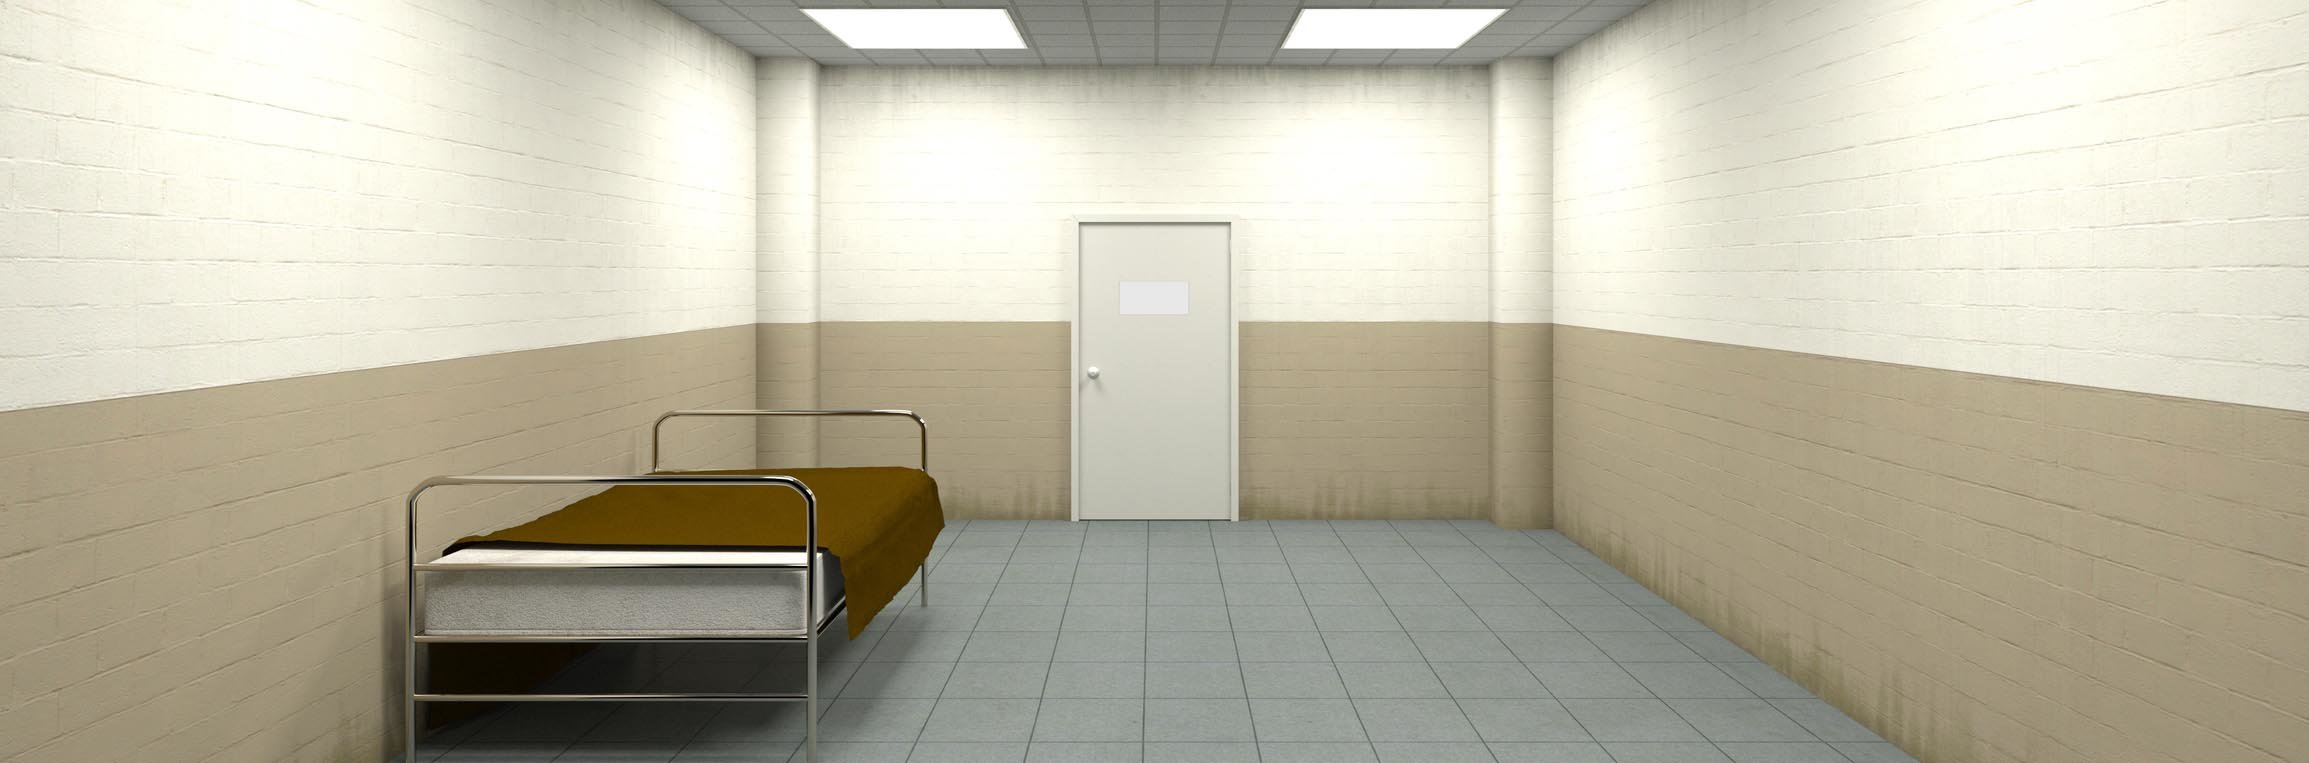 Solitary Confinement Is Counter Therapeutic According To Study